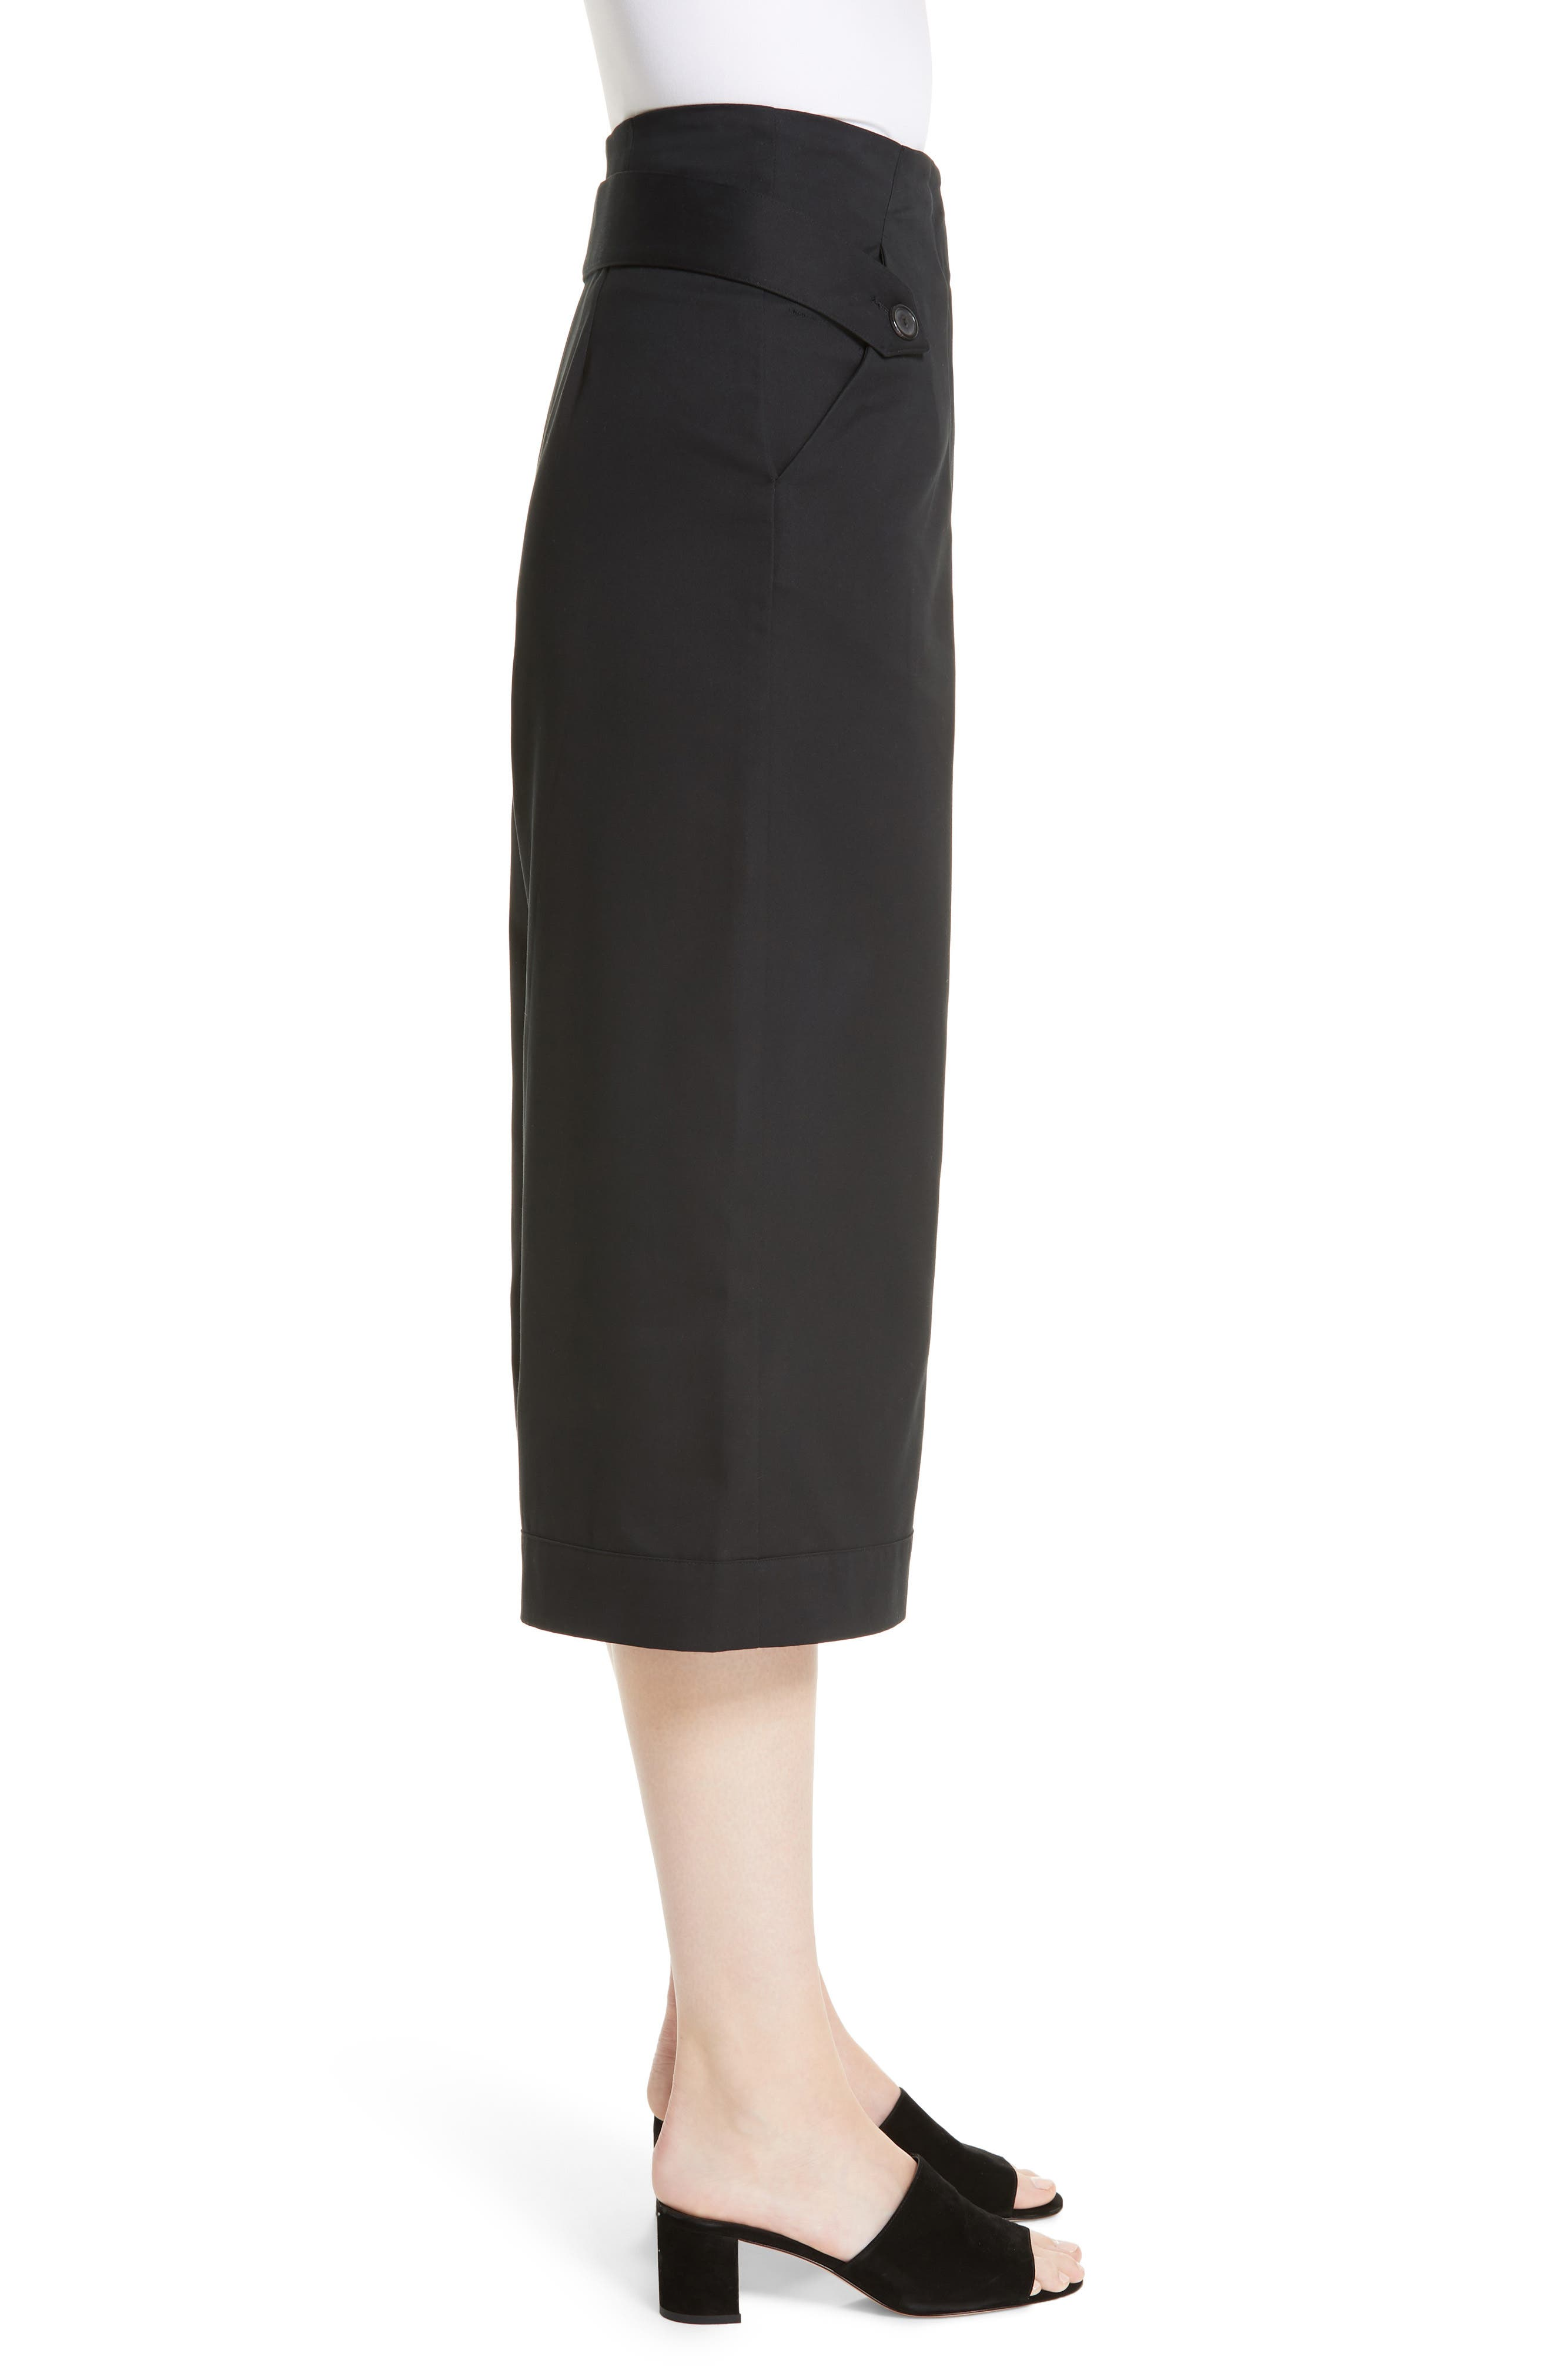 Palmer Harding Distorted Culottes,                             Alternate thumbnail 3, color,                             BLACK COTTON TWILL